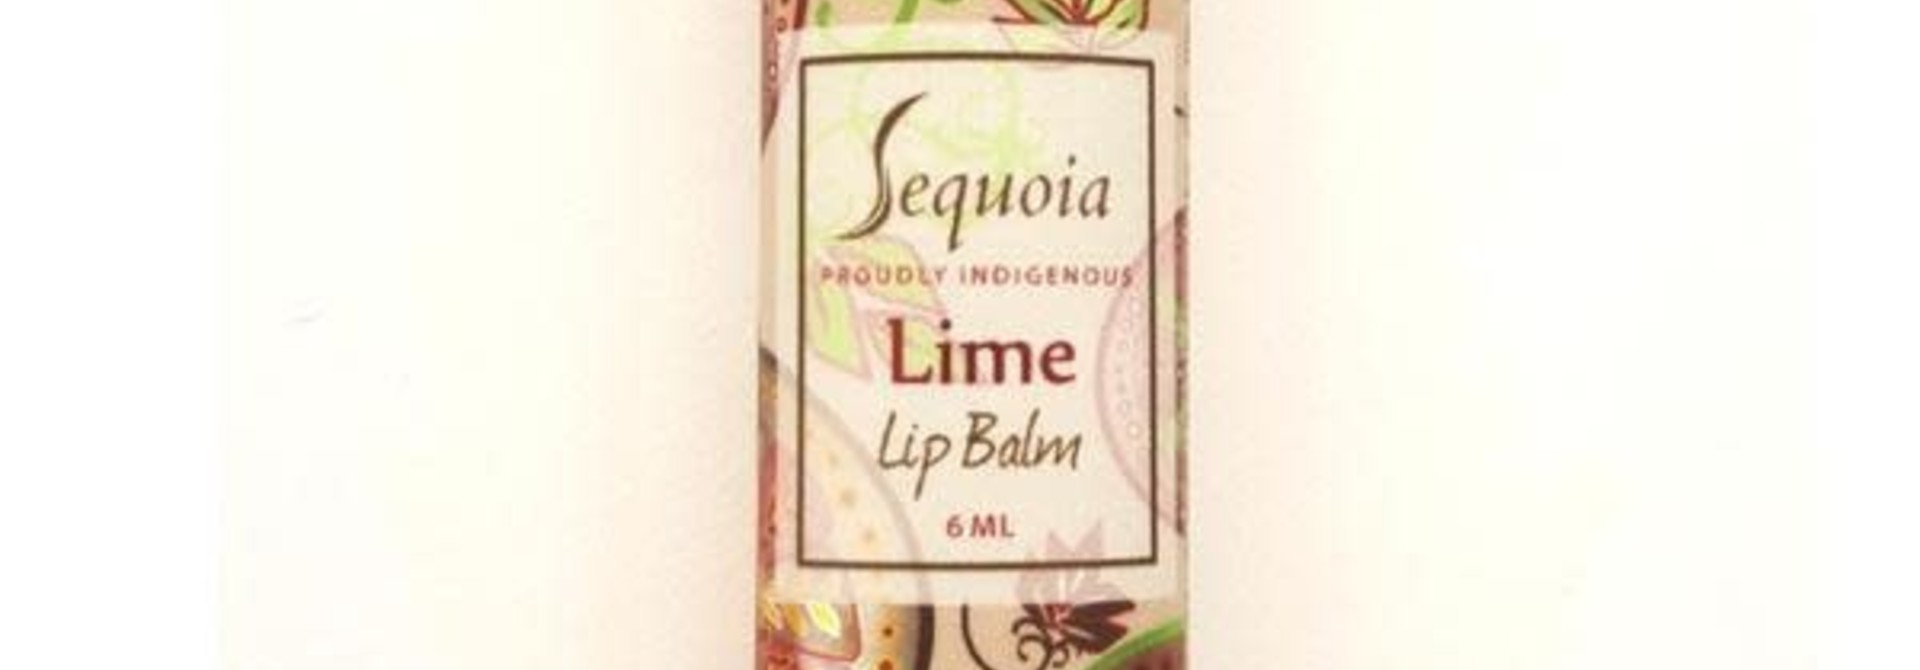 Sequoia Lime Lip Balm